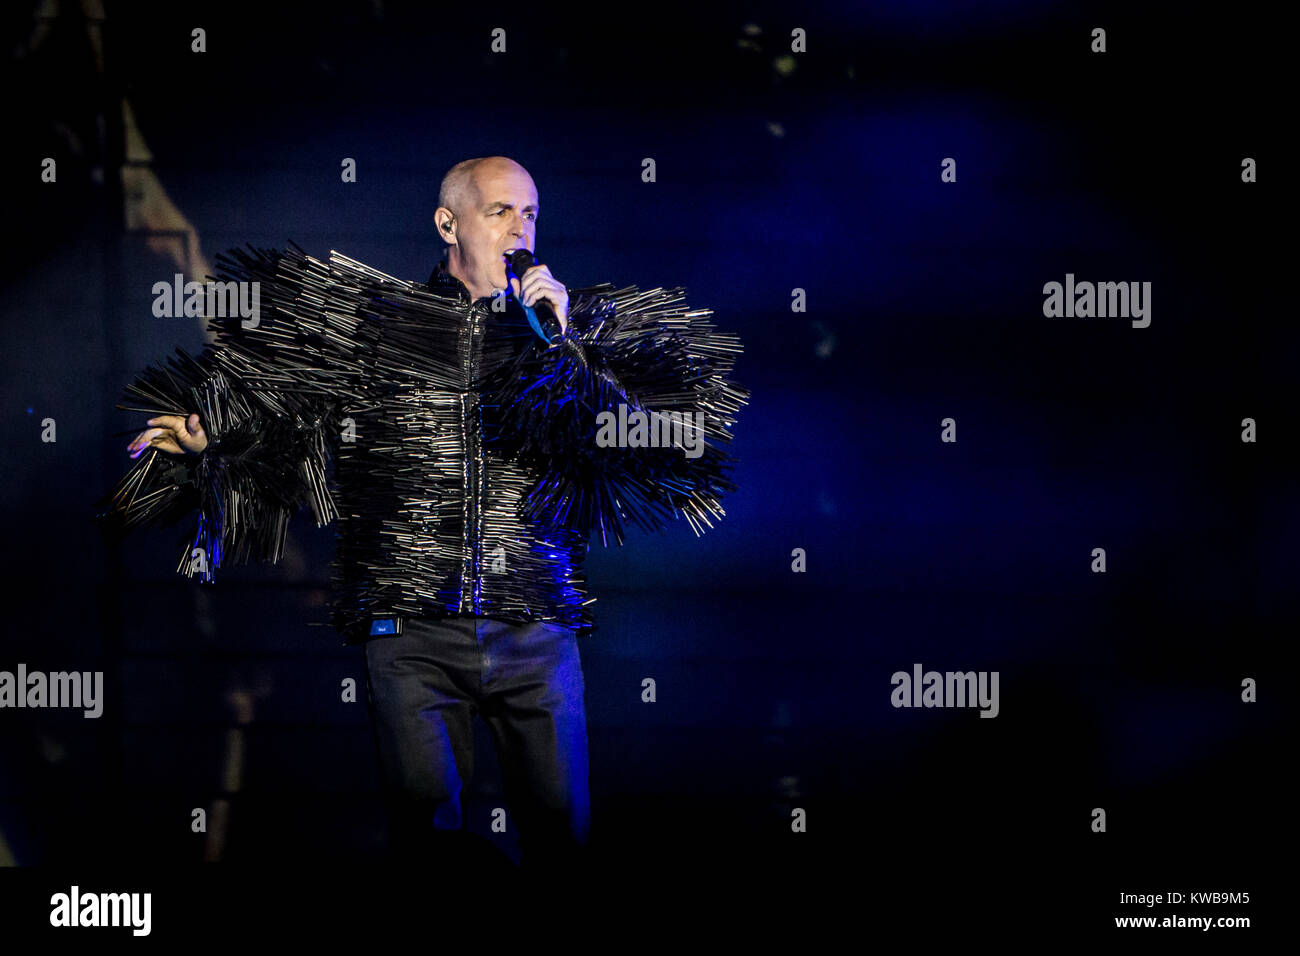 The English electronic pop and house duo Pet Shop Boys consists of the two musicians Neil Tennant (pictured) and - Stock Image